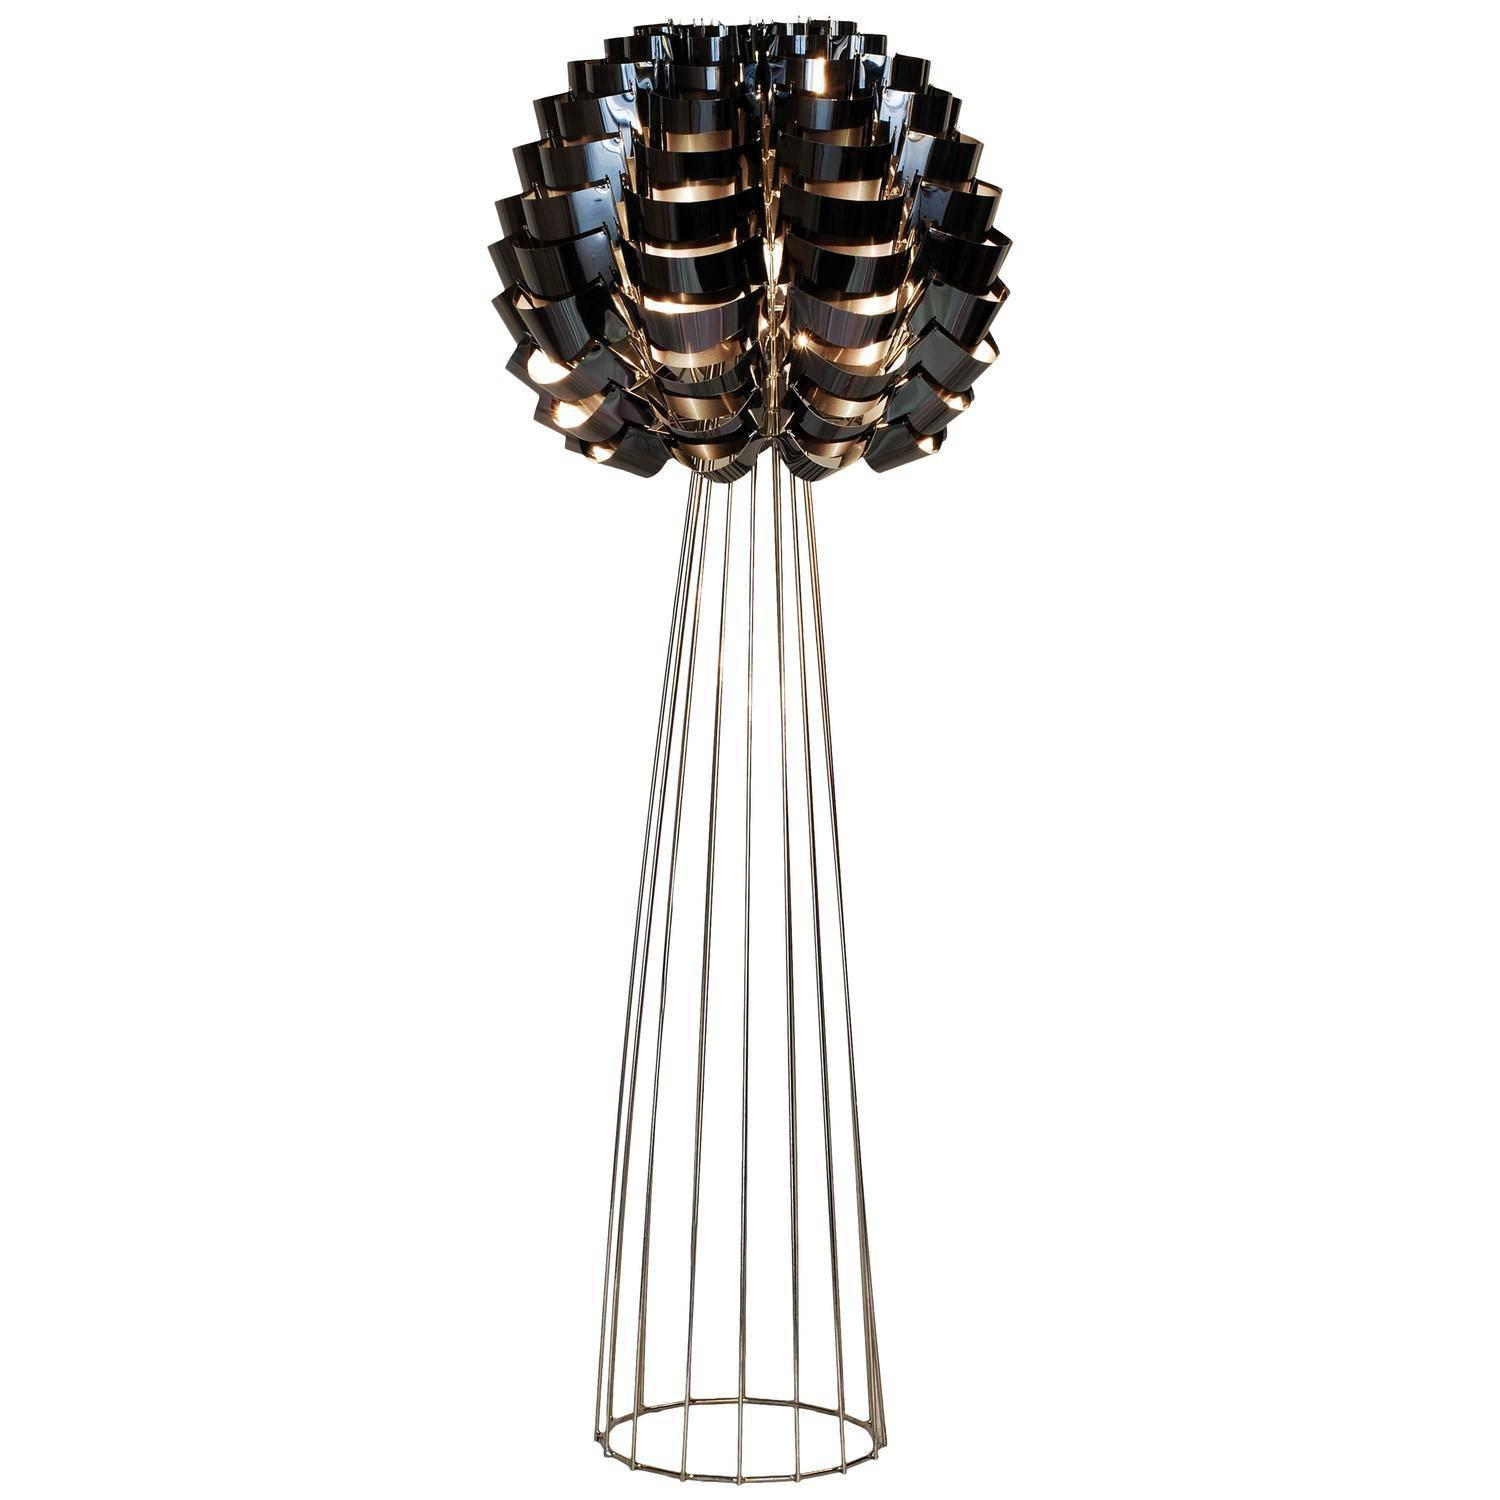 max sauze  black orion  floor lamp for sale at 1stdibs